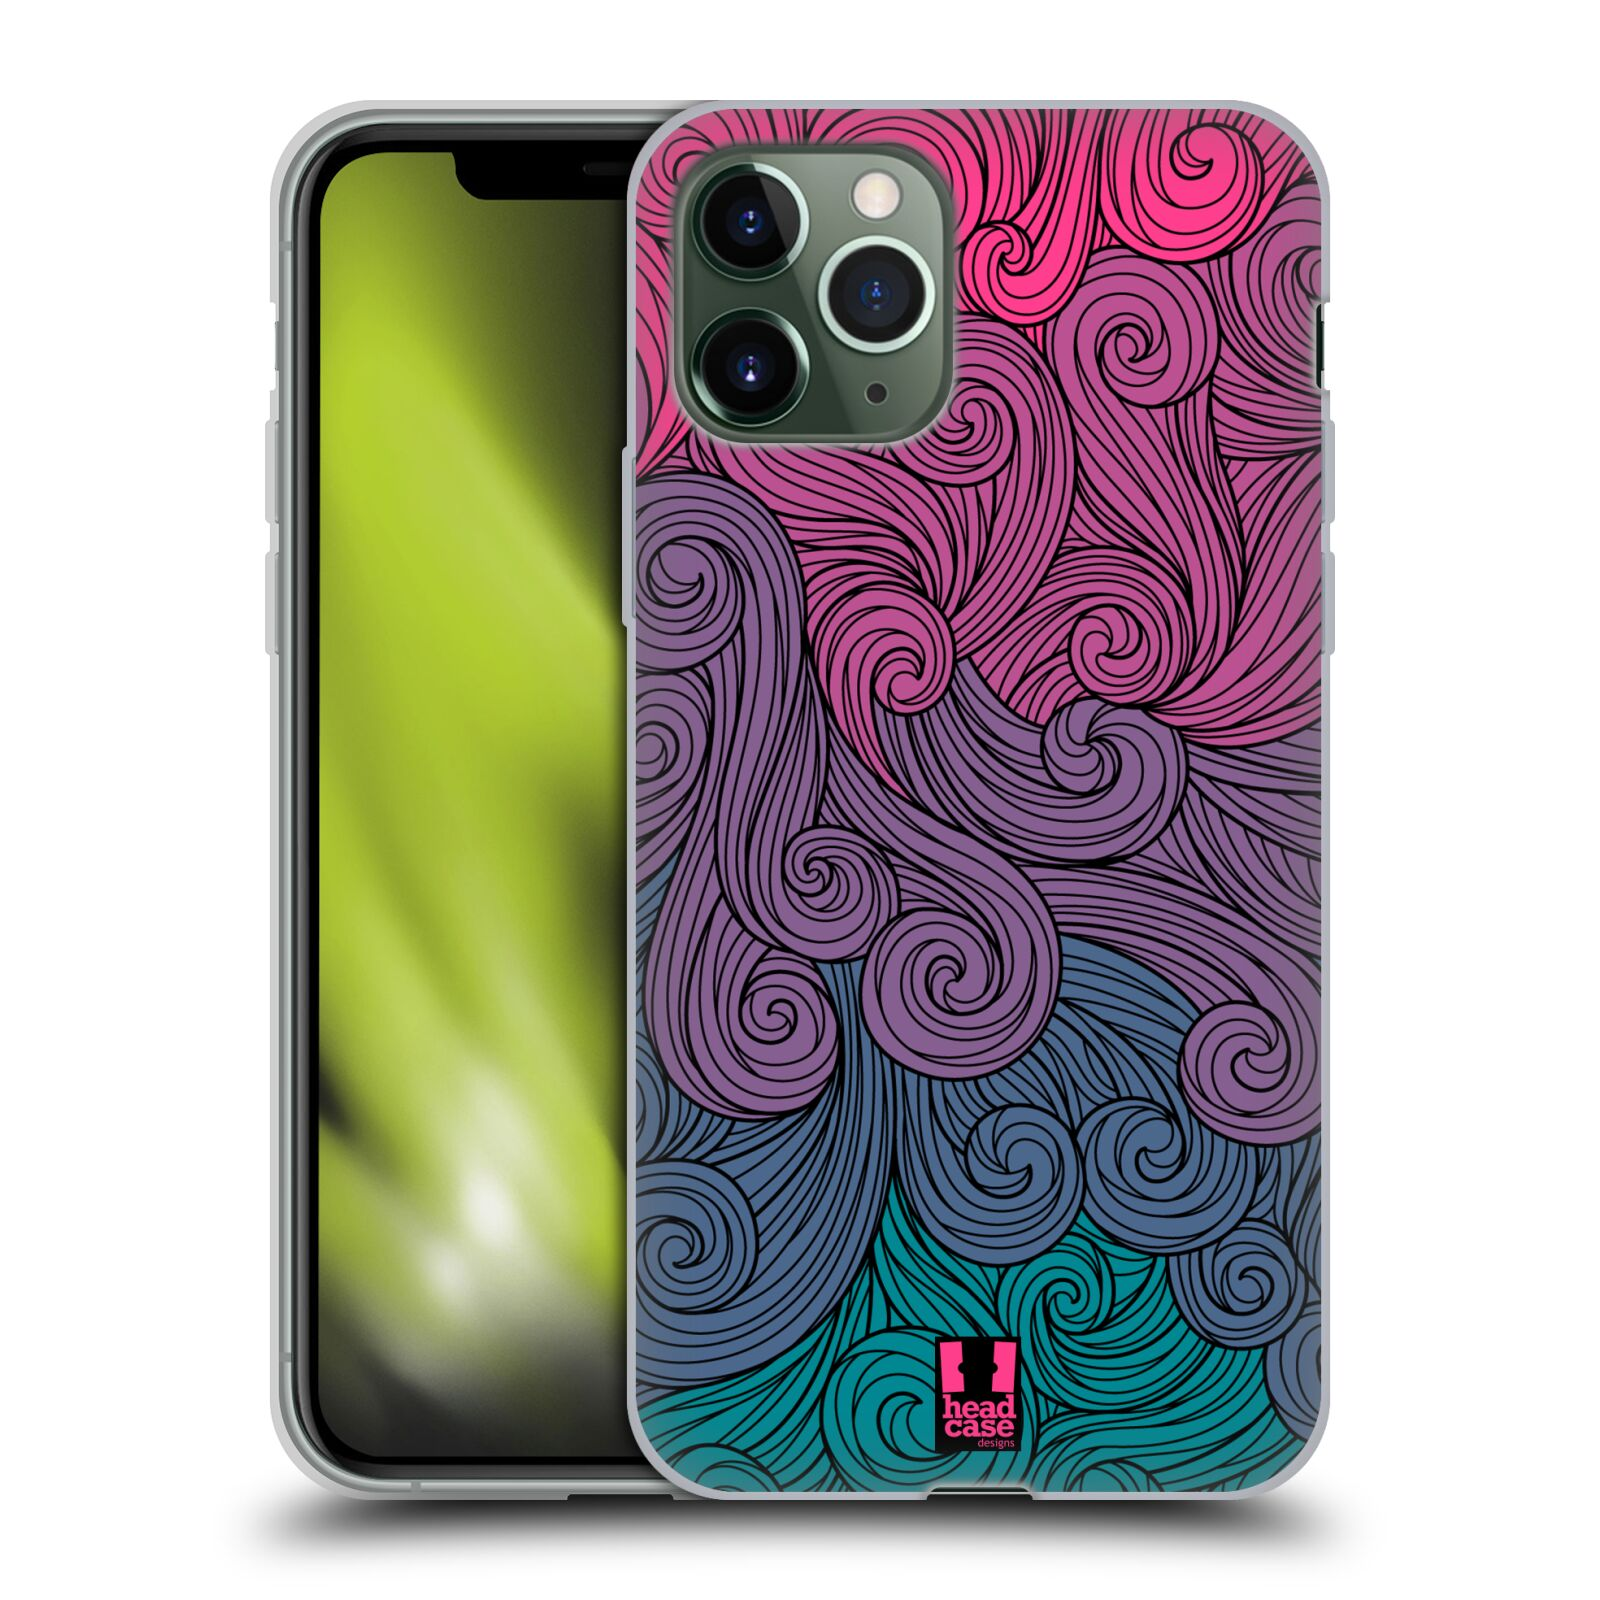 obal iphone x spigen , Silikonové pouzdro na mobil Apple iPhone 11 Pro - Head Case - Swirls Hot Pink